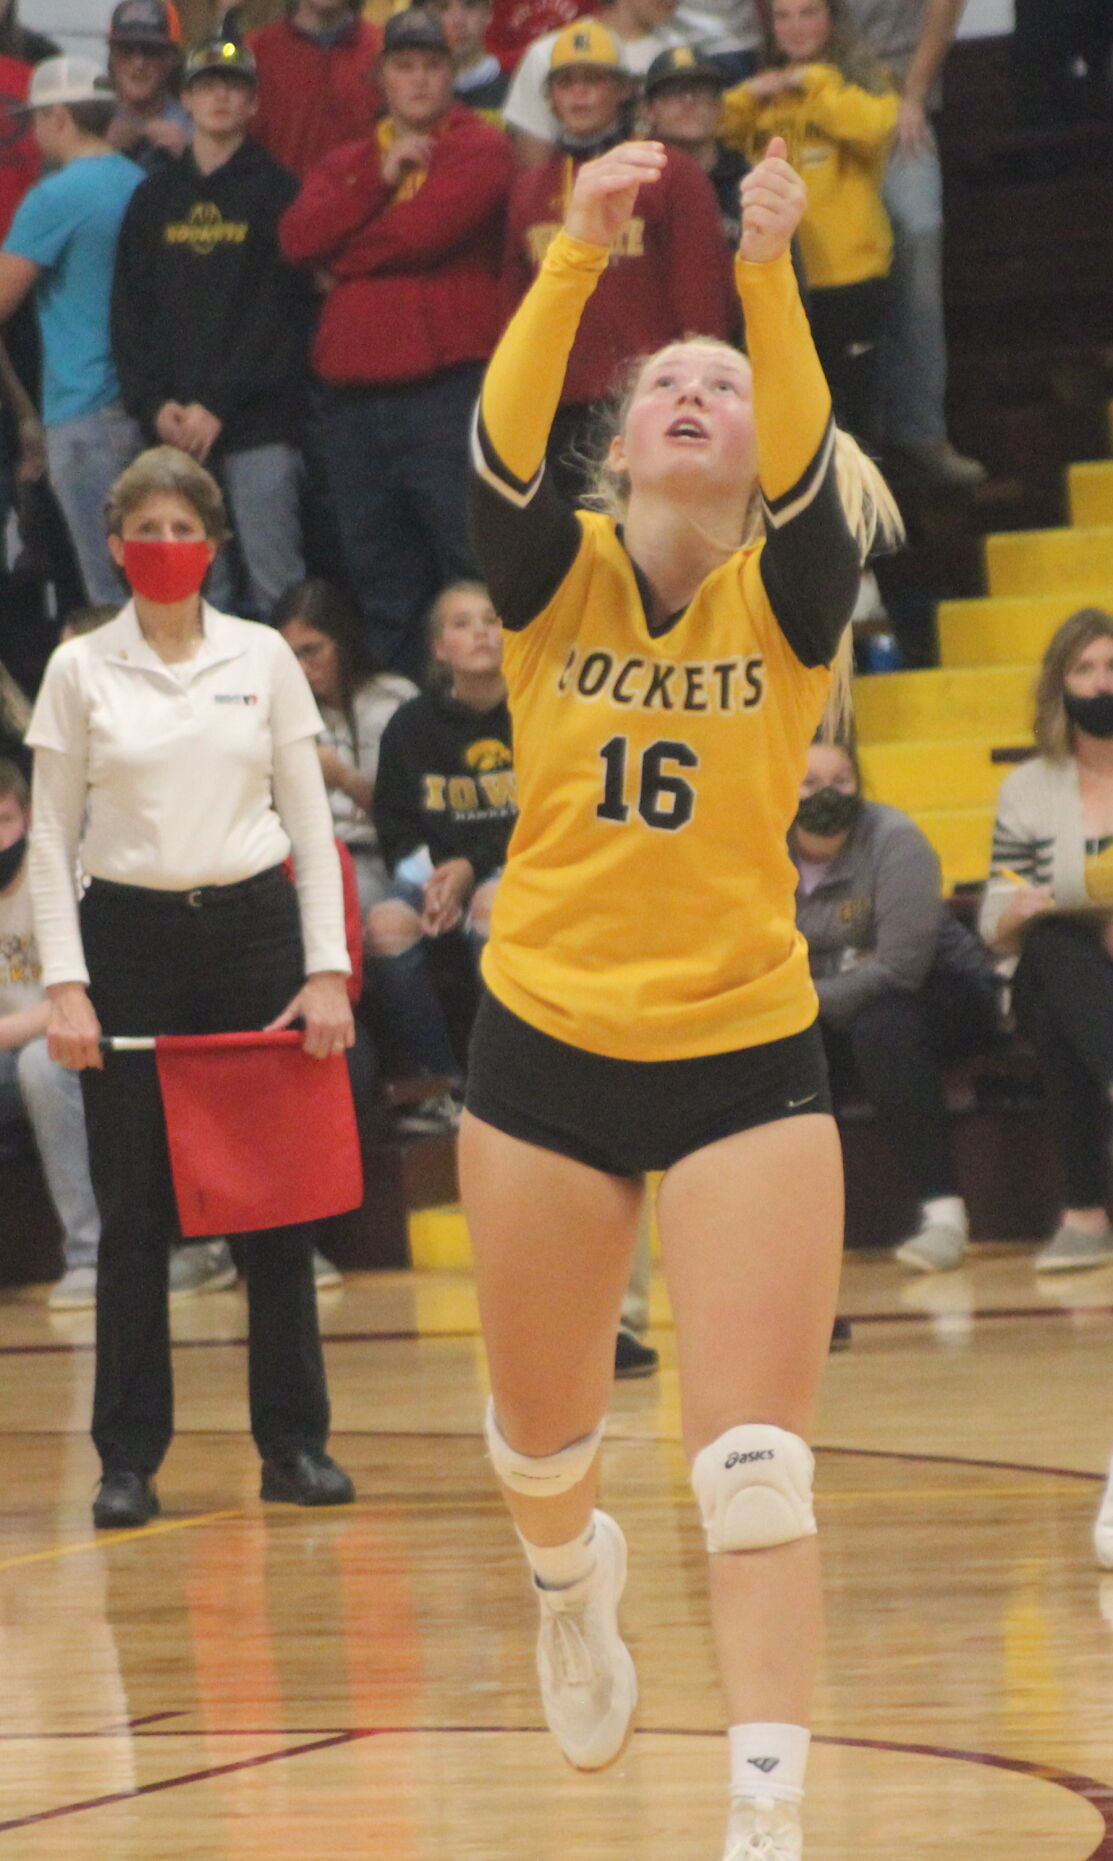 Davis earns all district honors